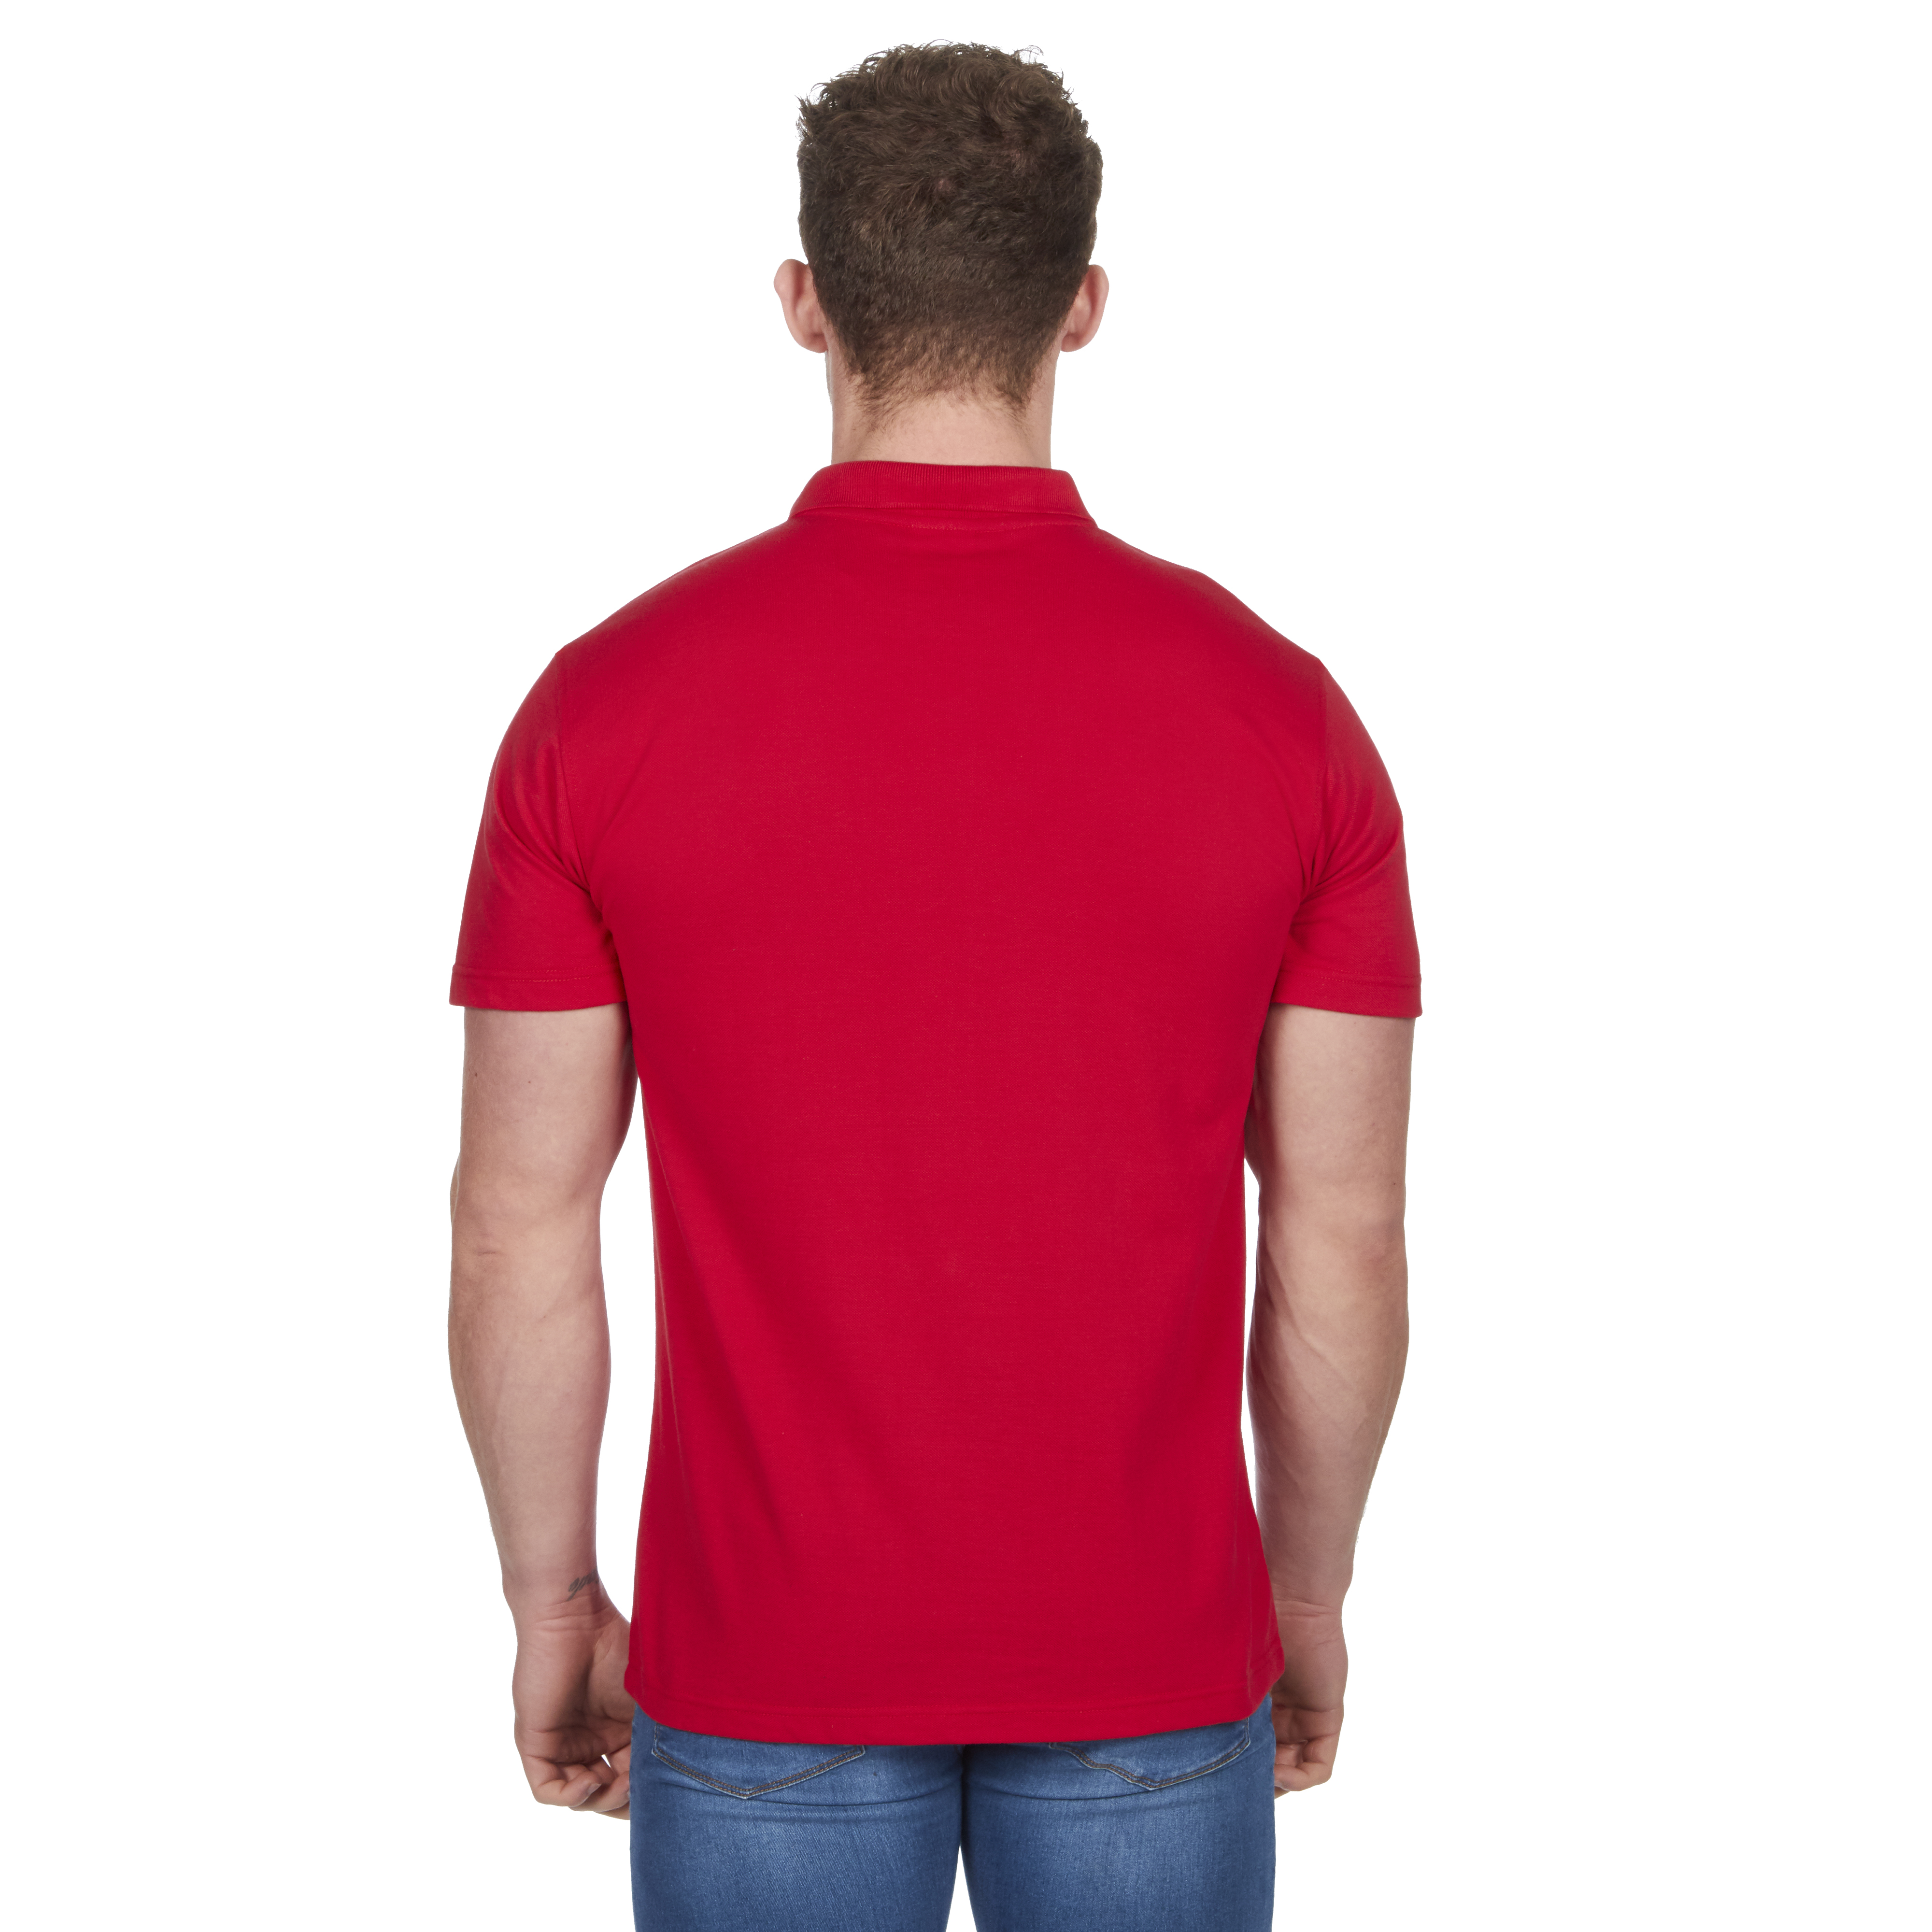 Mens-Classic-Polo-Top-Plus-Size-T-Shirt-Plain-Shirt-Big-And-Tall-Short-Sleeve thumbnail 30